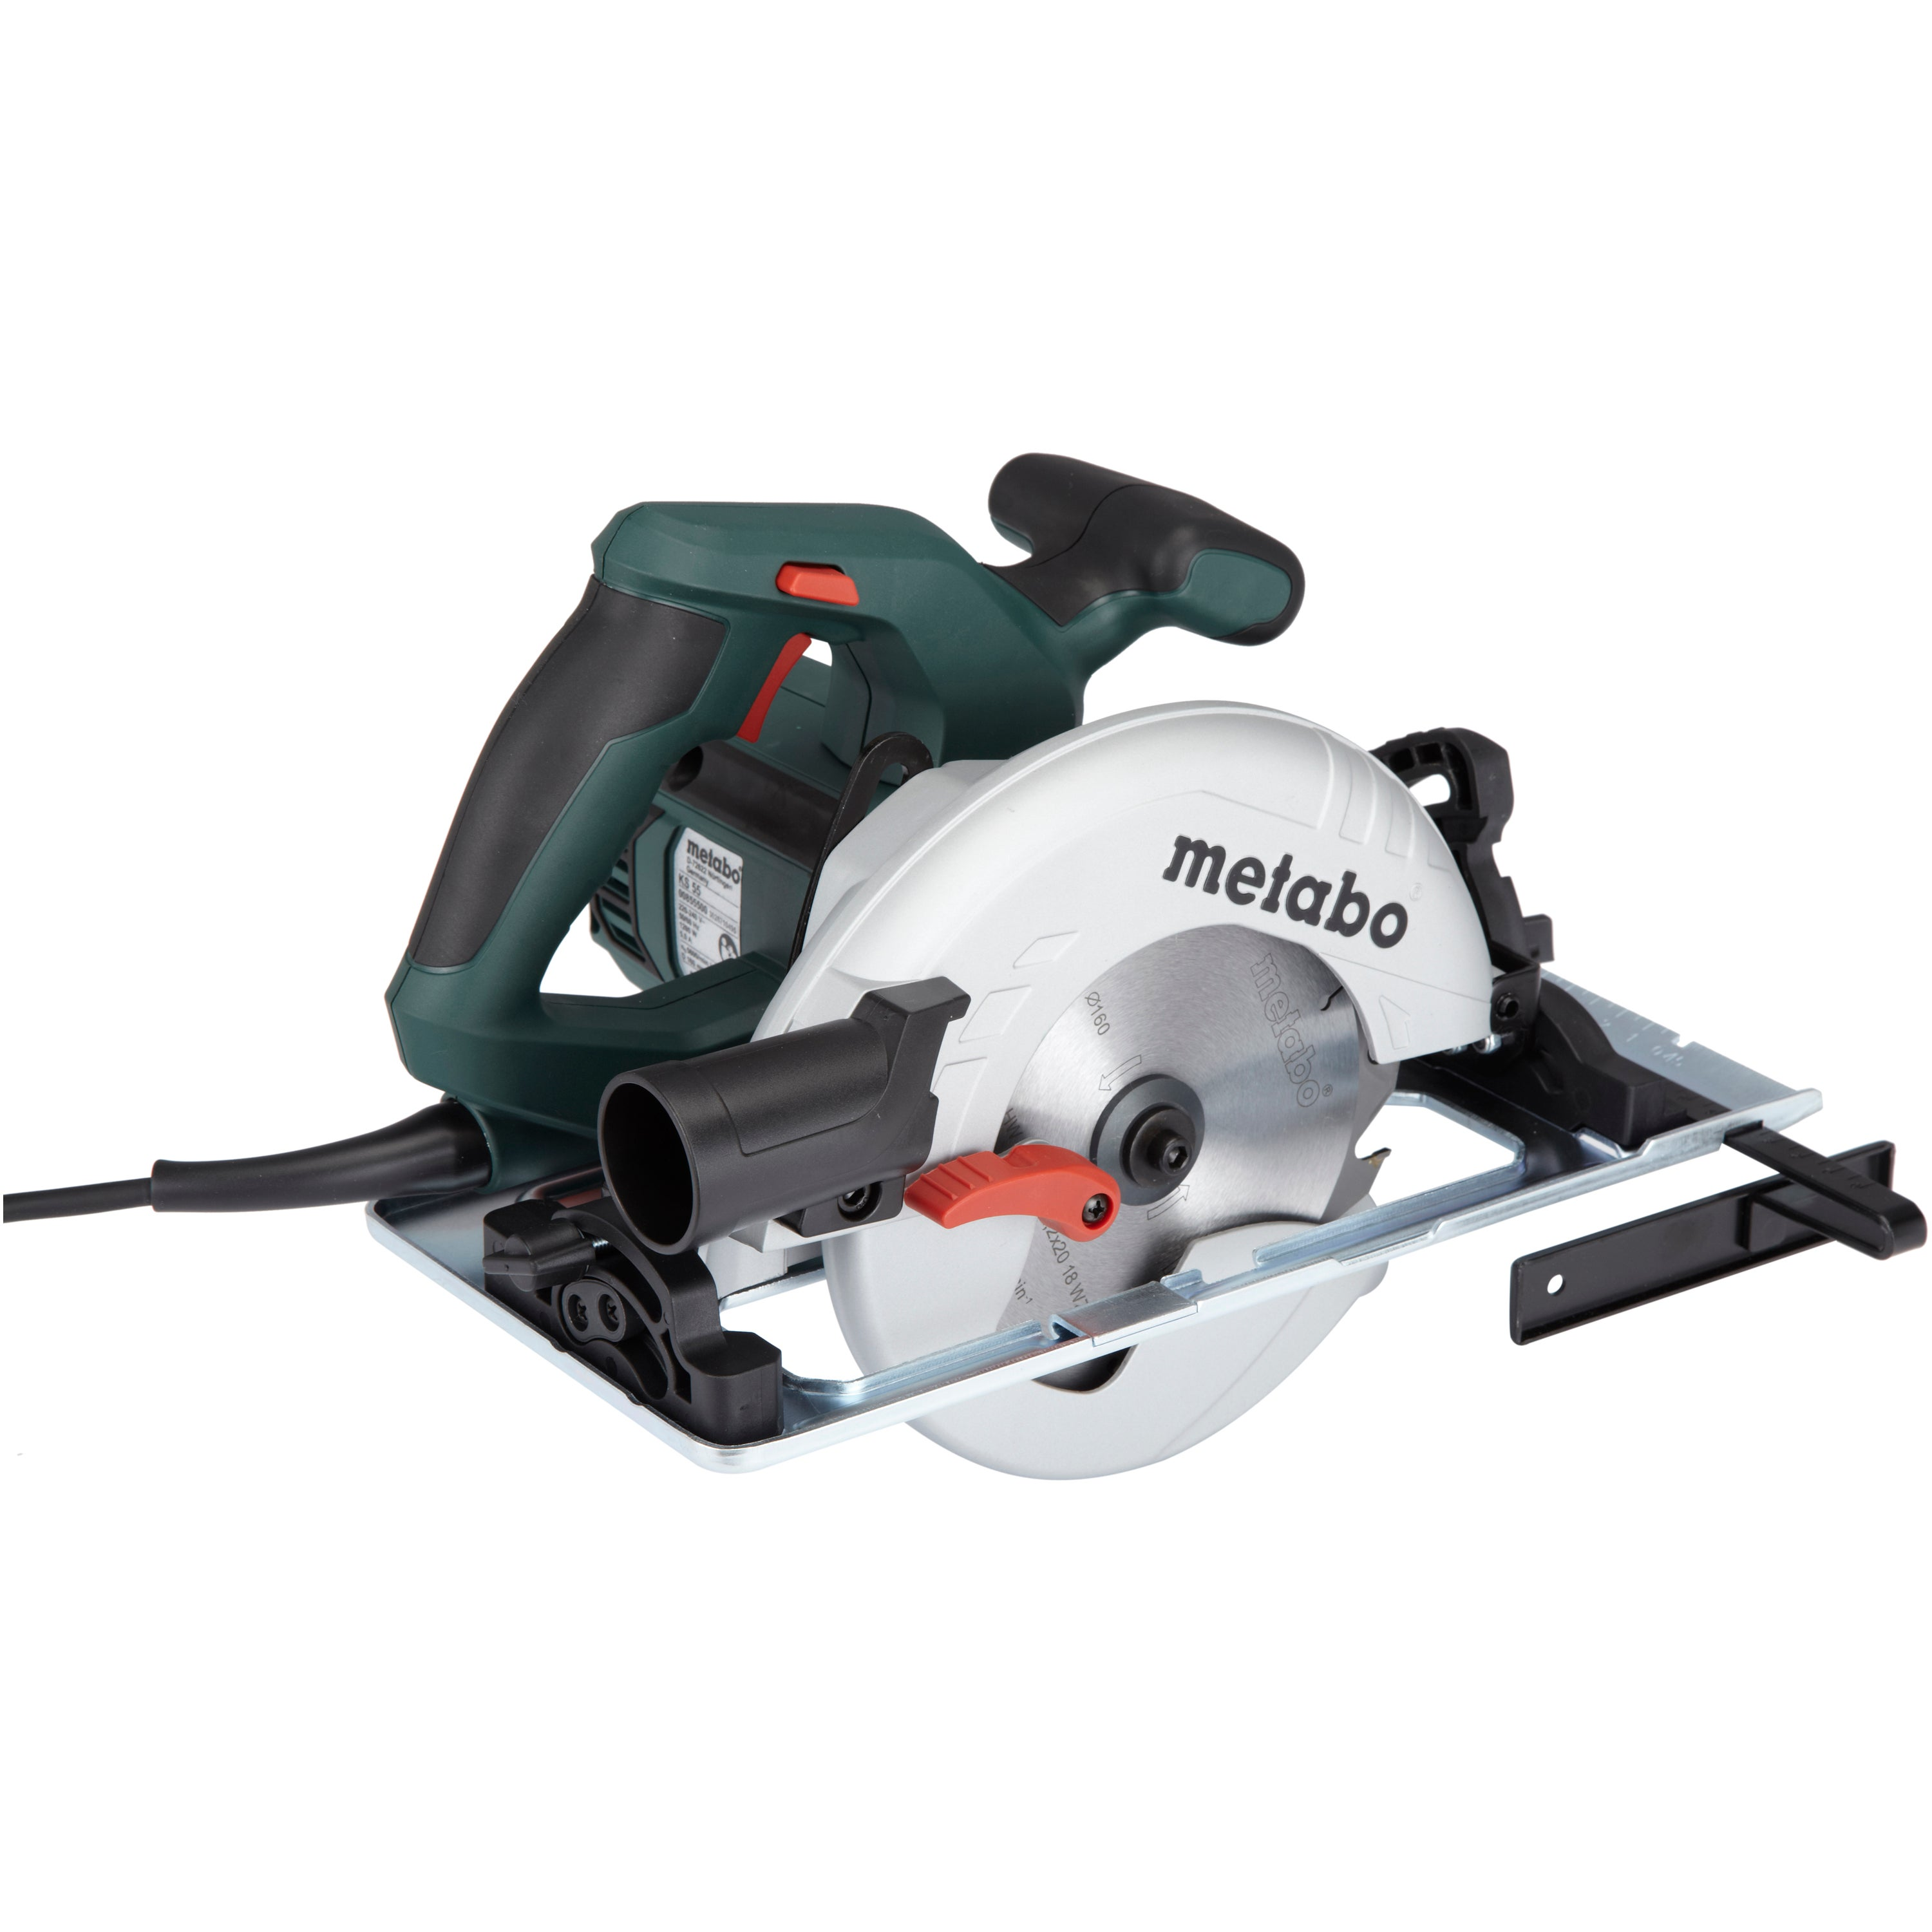 Scie Circulaire Filaire Metabo 1200 W 160 Mm Ks 55